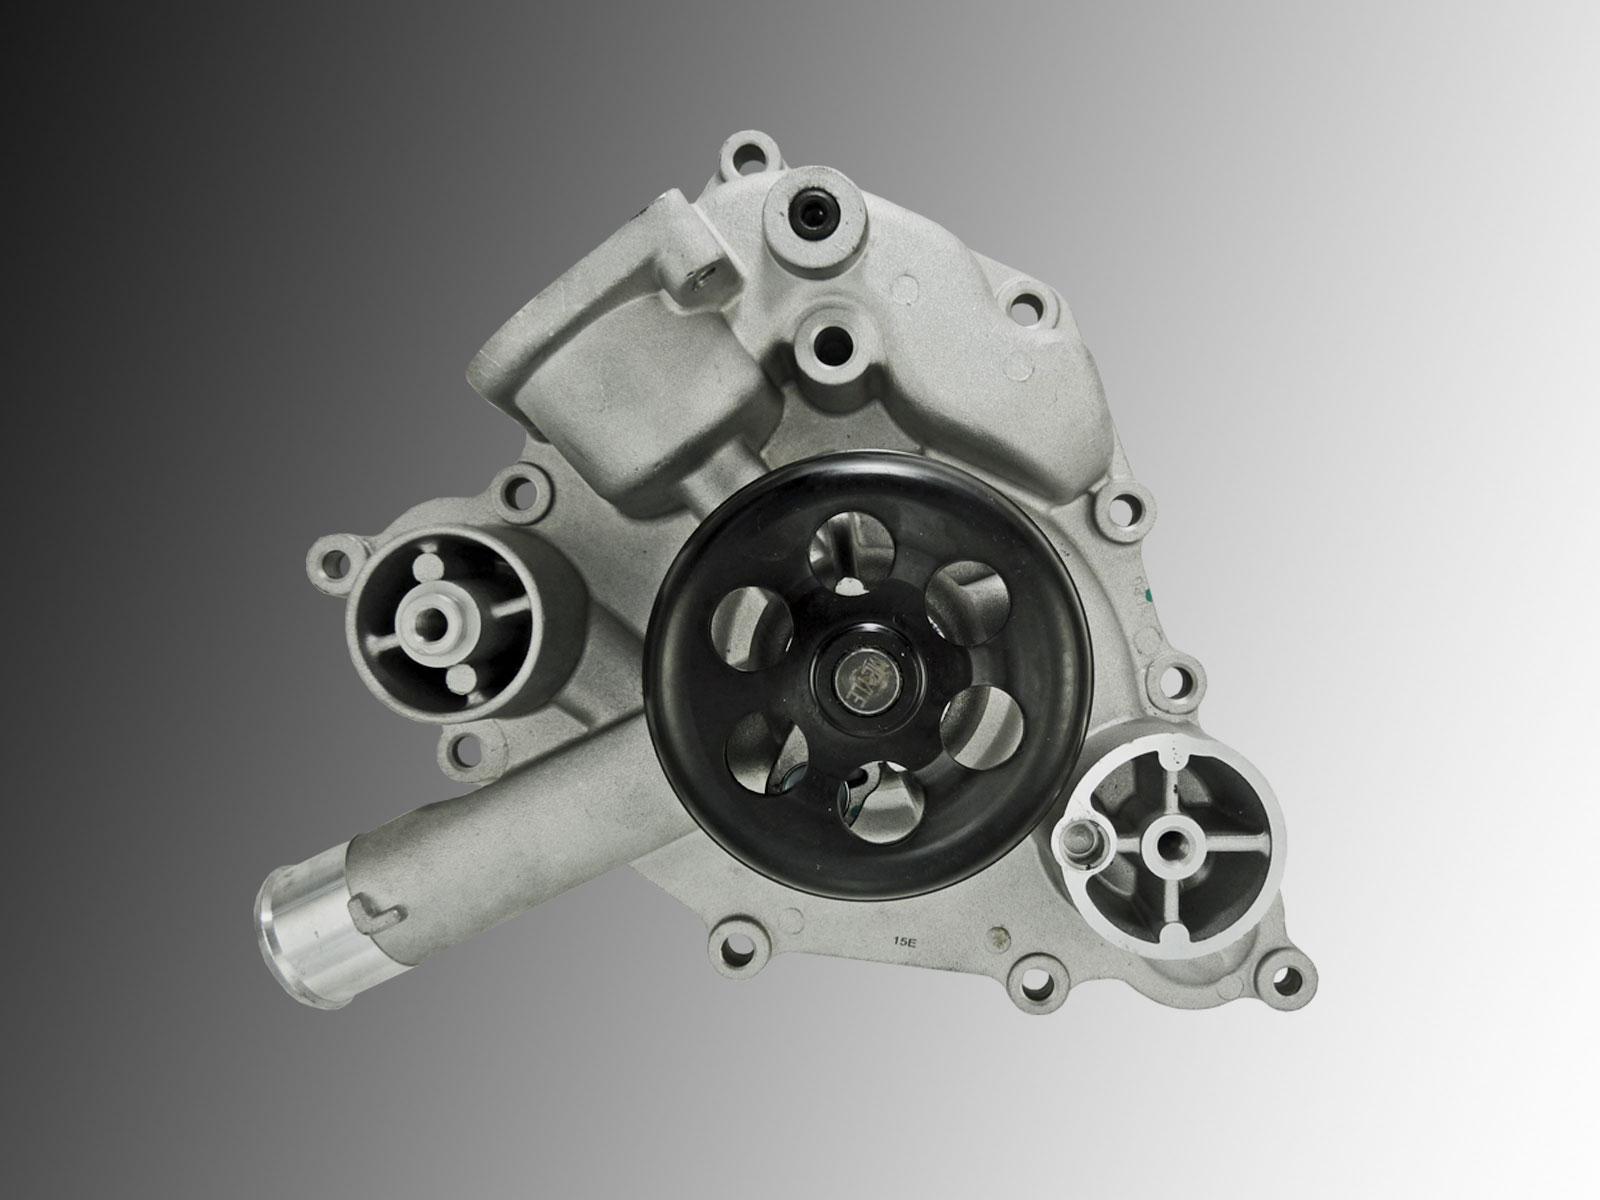 2011 dodge ram 1500 hemi water pump